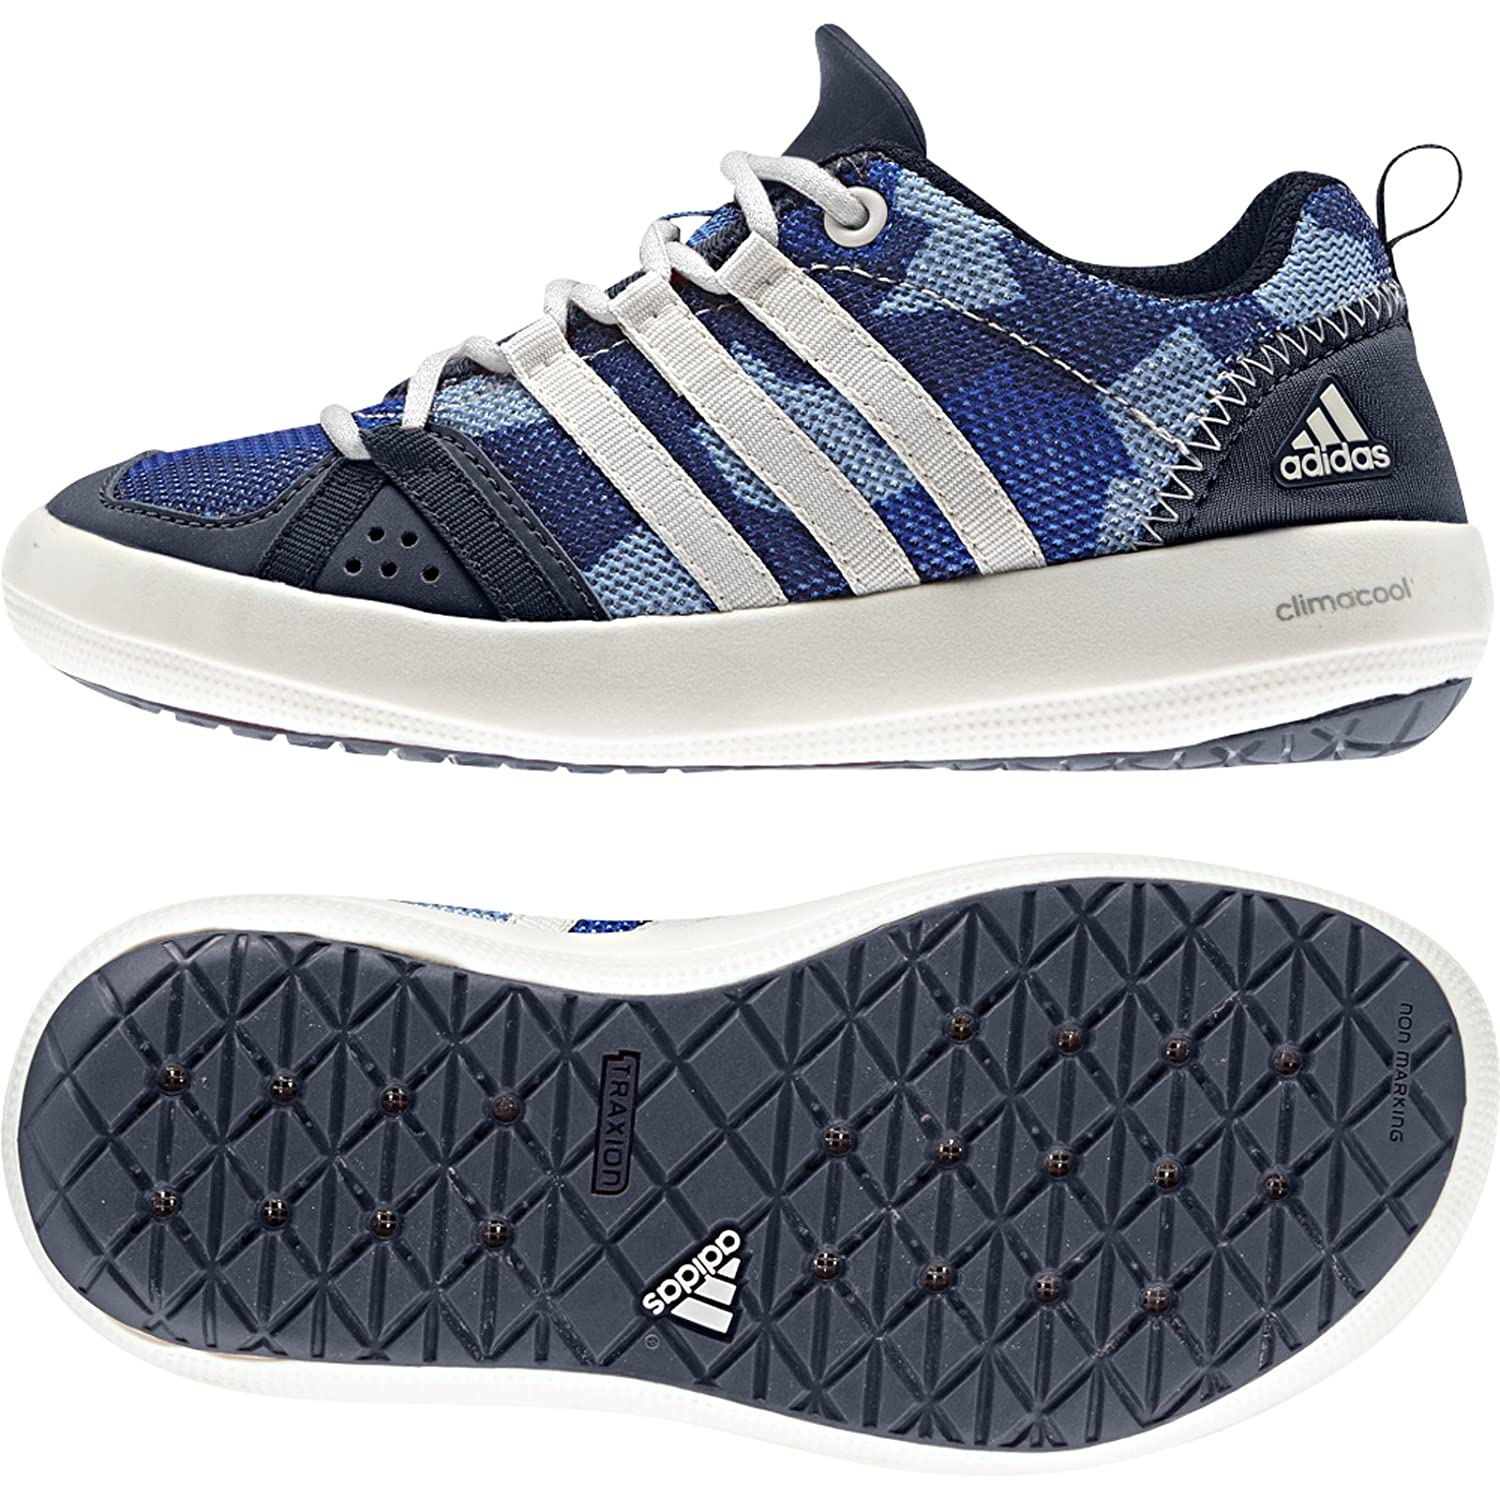 huge discount a98ea 2ea52 adidas outdoor Climacool Boat Lace Water Shoe (Little Kid/Big Kid)